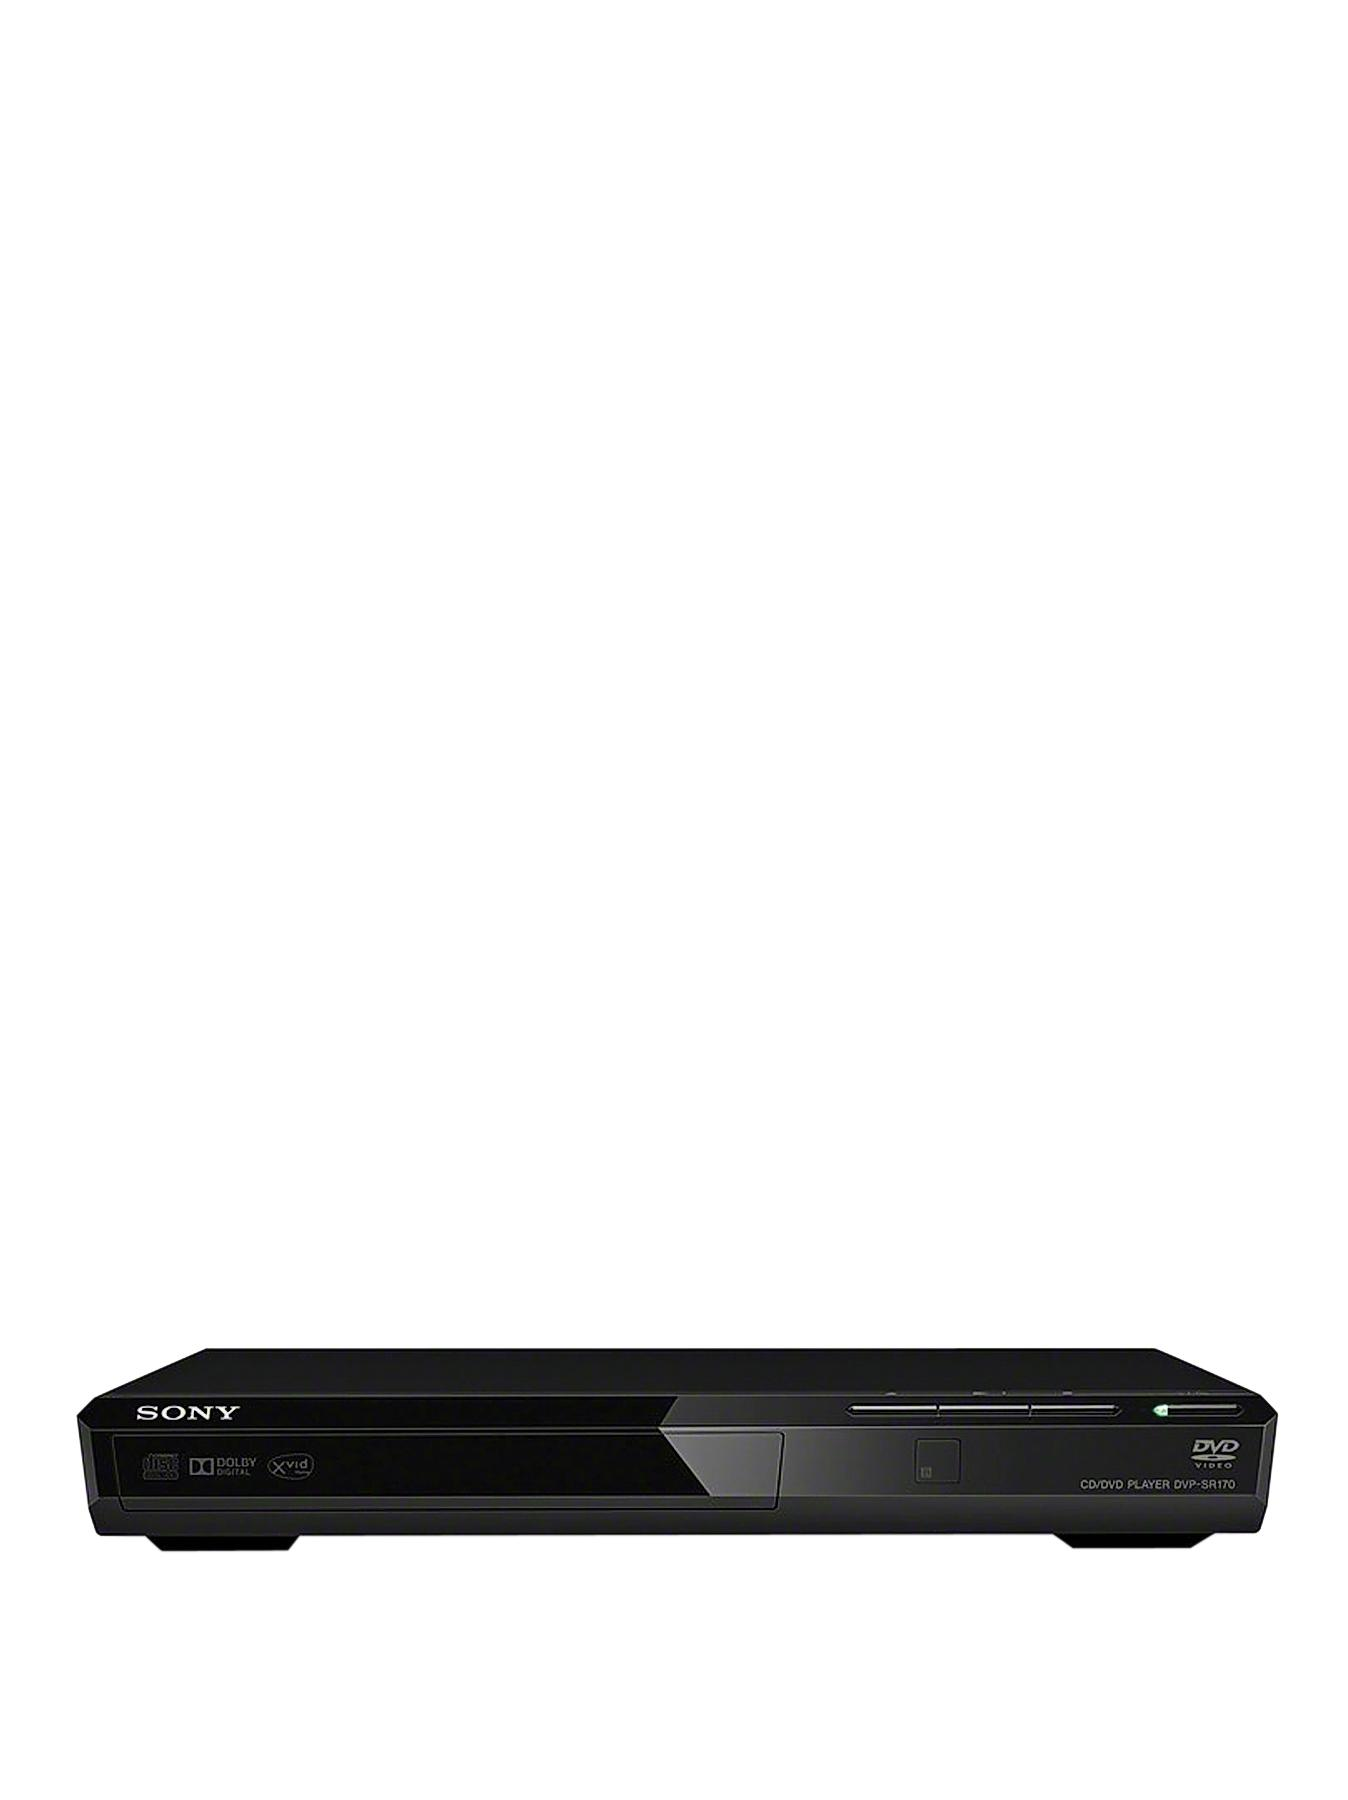 DVP-SR170 DVD Player